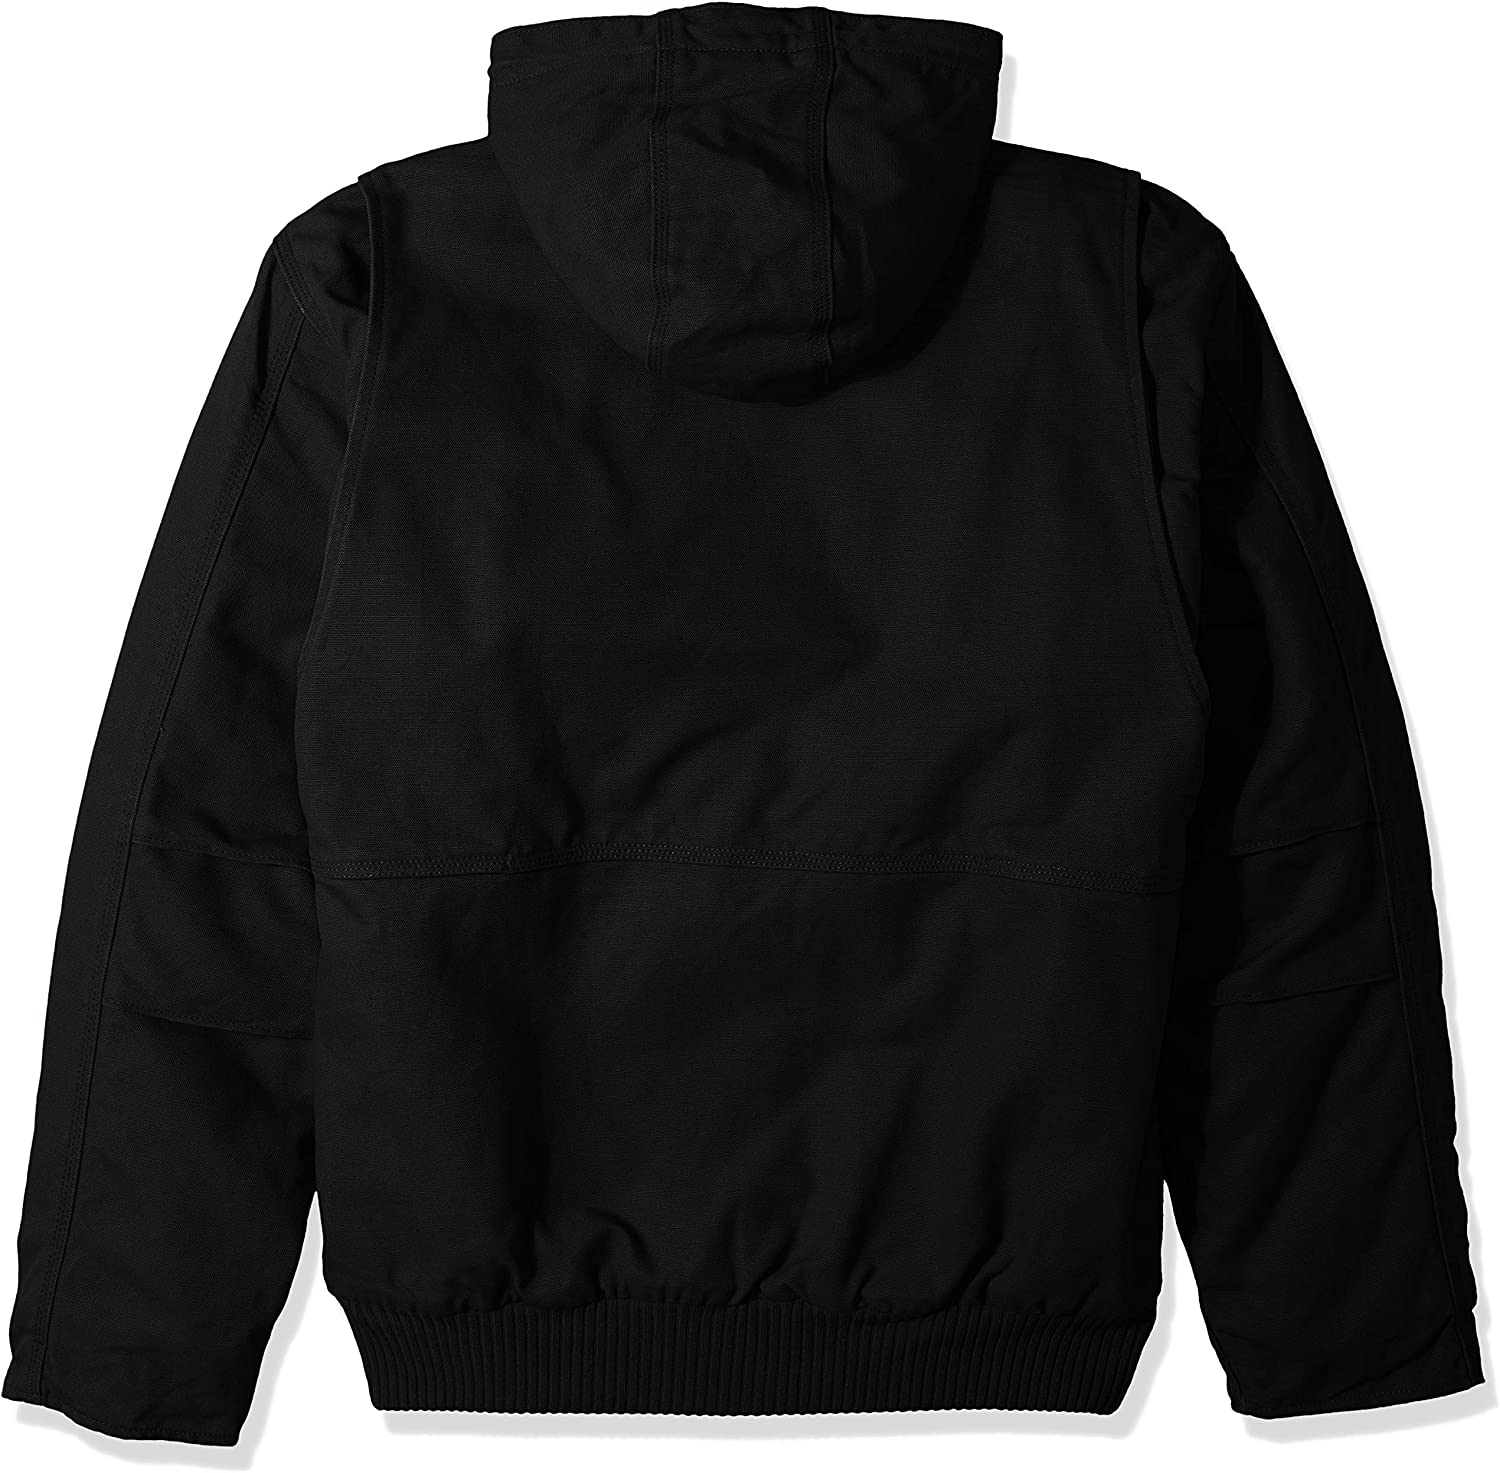 Carhartt Men's Full Swing Armstrong Active Jac (Regular and Big & Tall Sizes): Clothing